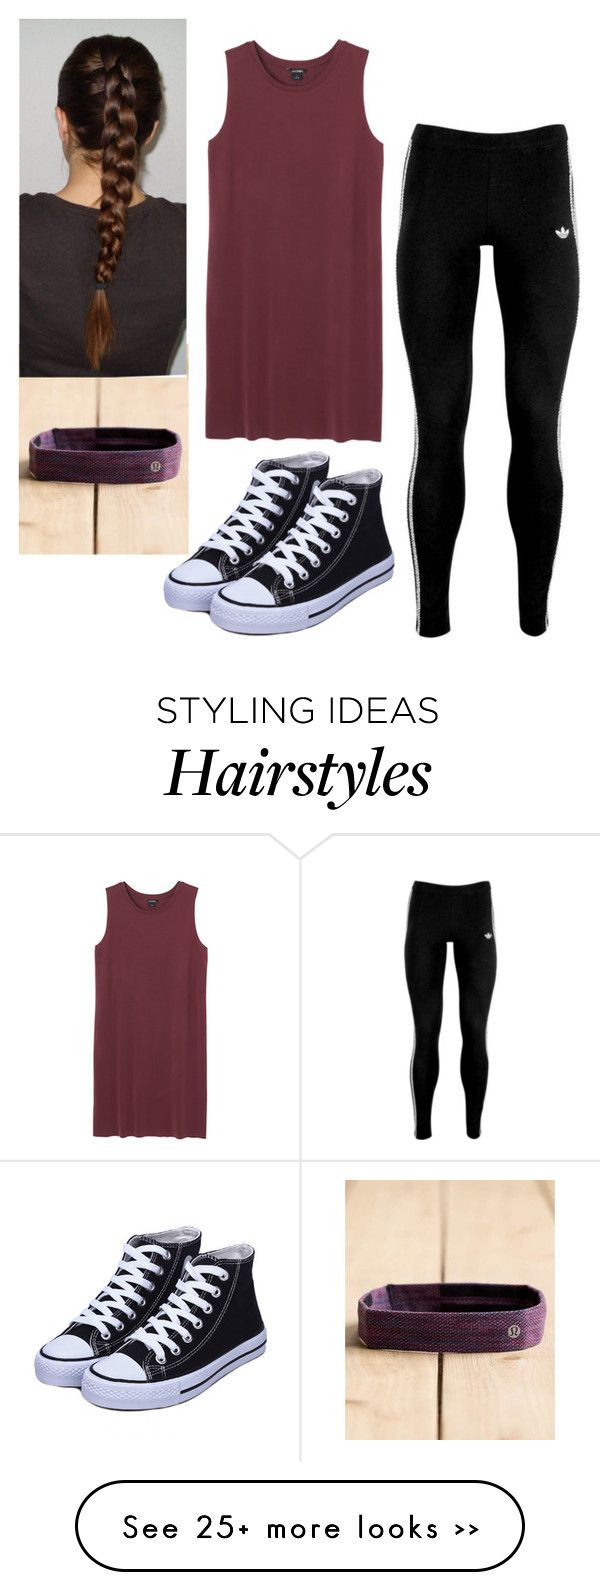 """Untitled #392"" by brunnette24189 on Polyvore featuring Monki, adidas Originals and lululemon"